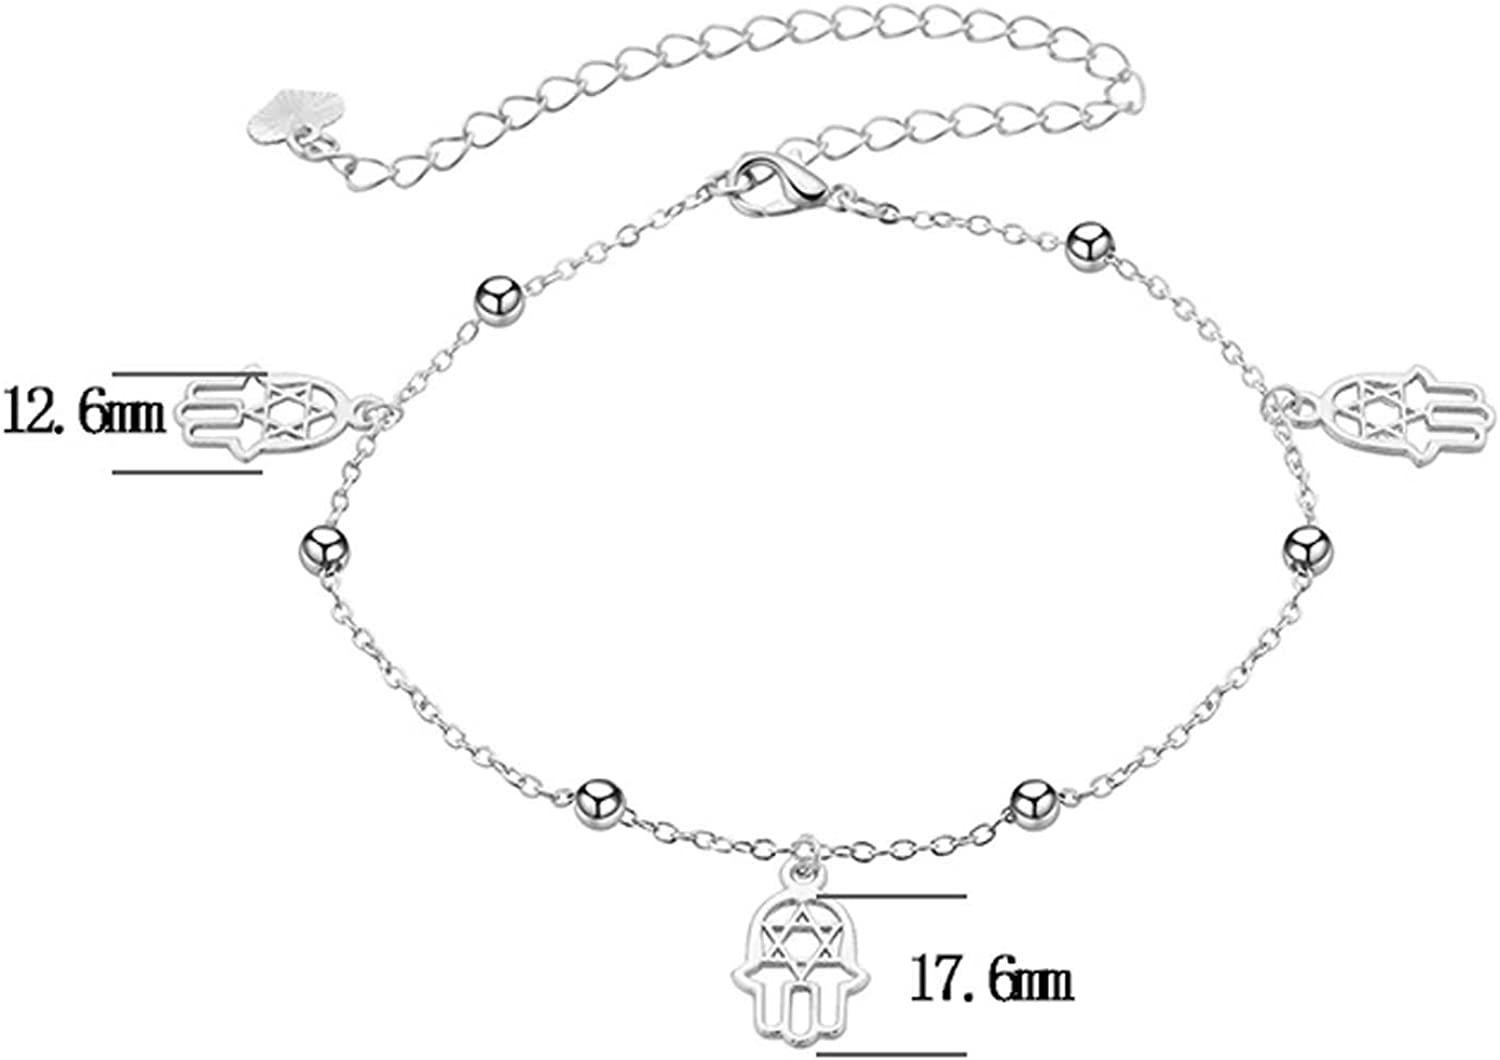 Bishilin Silver Plated Ladies Anklets Silver with Pendant Hamashand Ankle Chain Beach Chain Silver